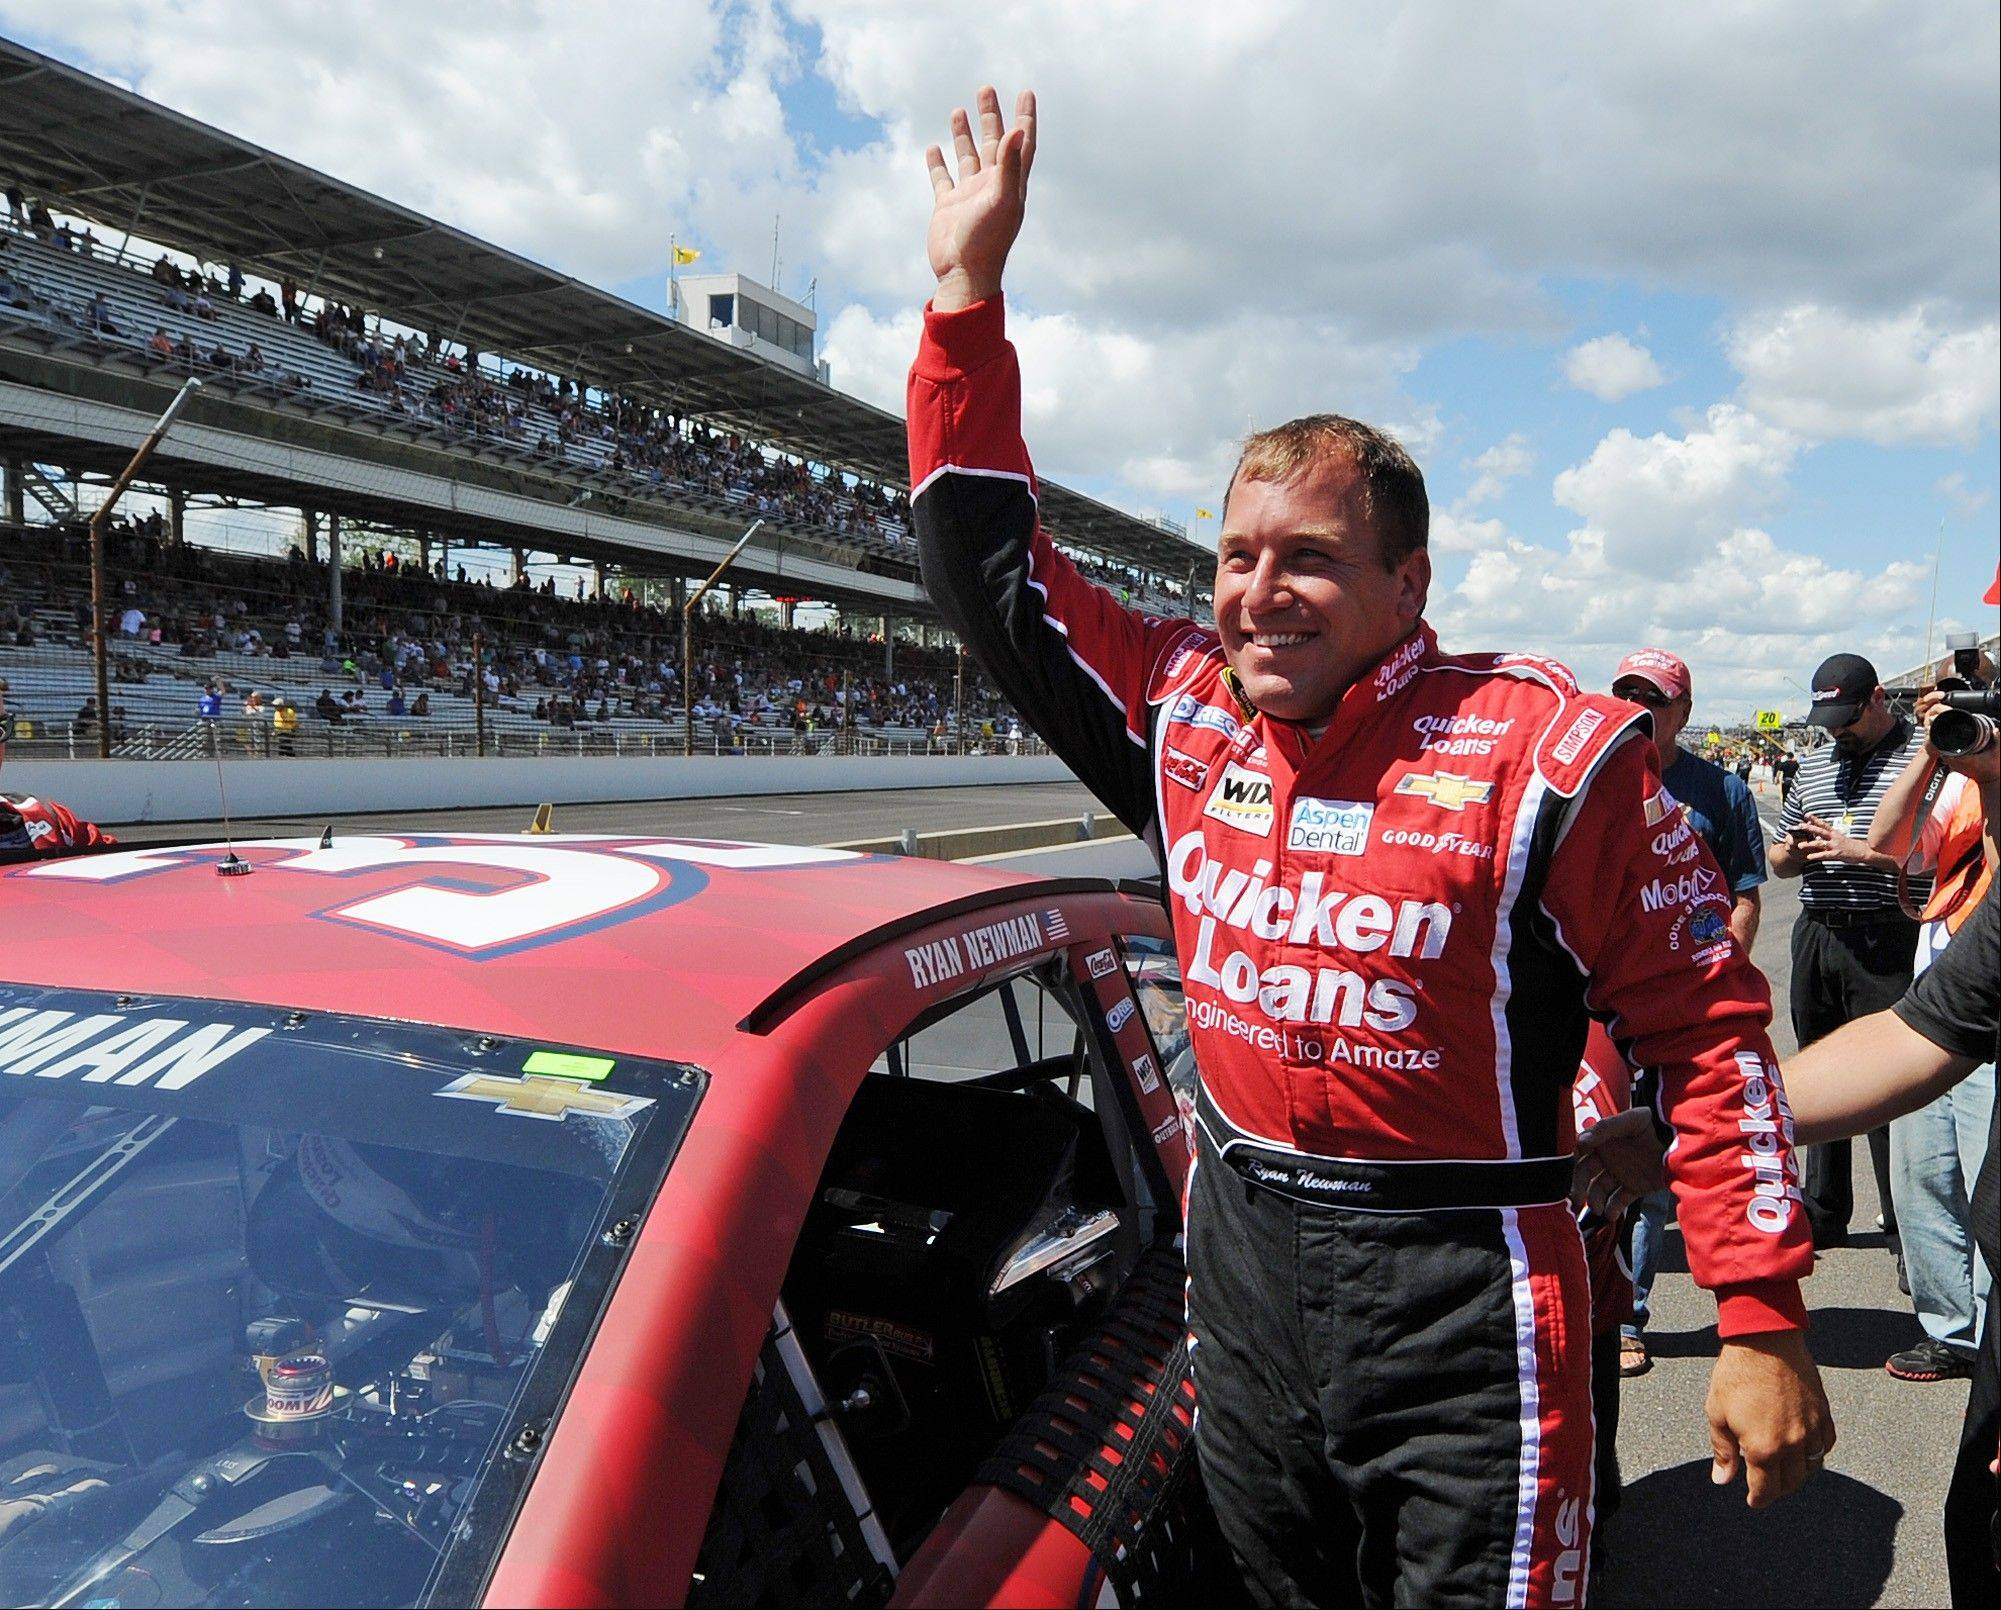 Sprint Cup Series driver Ryan Newman waves to the fans after qualifying for the pole position for the Brickyard 400 auto race at the Indianapolis Motor Speedway in Indianapolis, Saturday,July 27, 2013. Newman qualified with a speed of 187.531 mph. (AP Photo/Doug McSchooler)